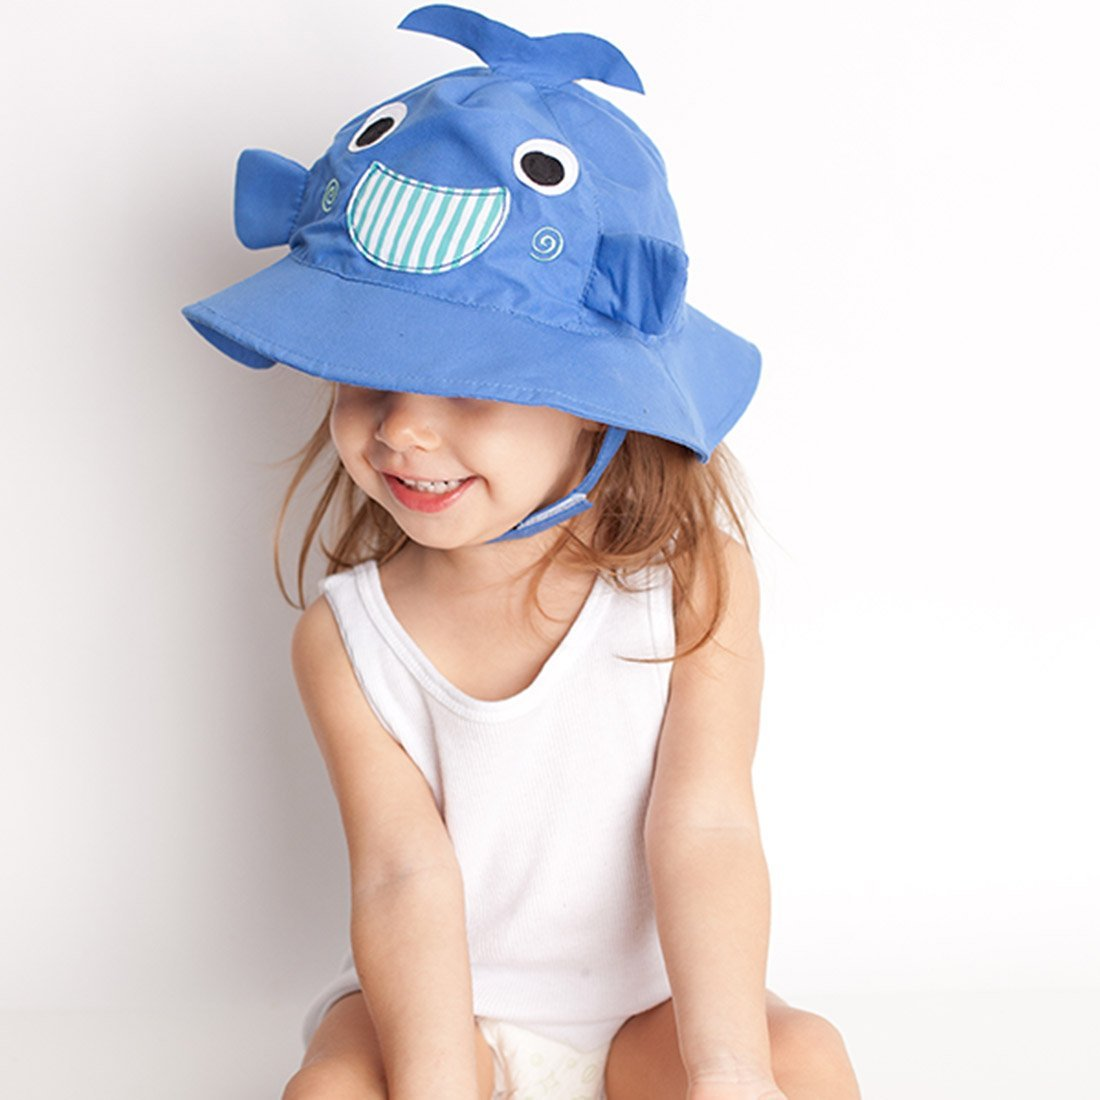 ZOOCCHINI UPF50+ Baby Sun Hat - Willy the Whale